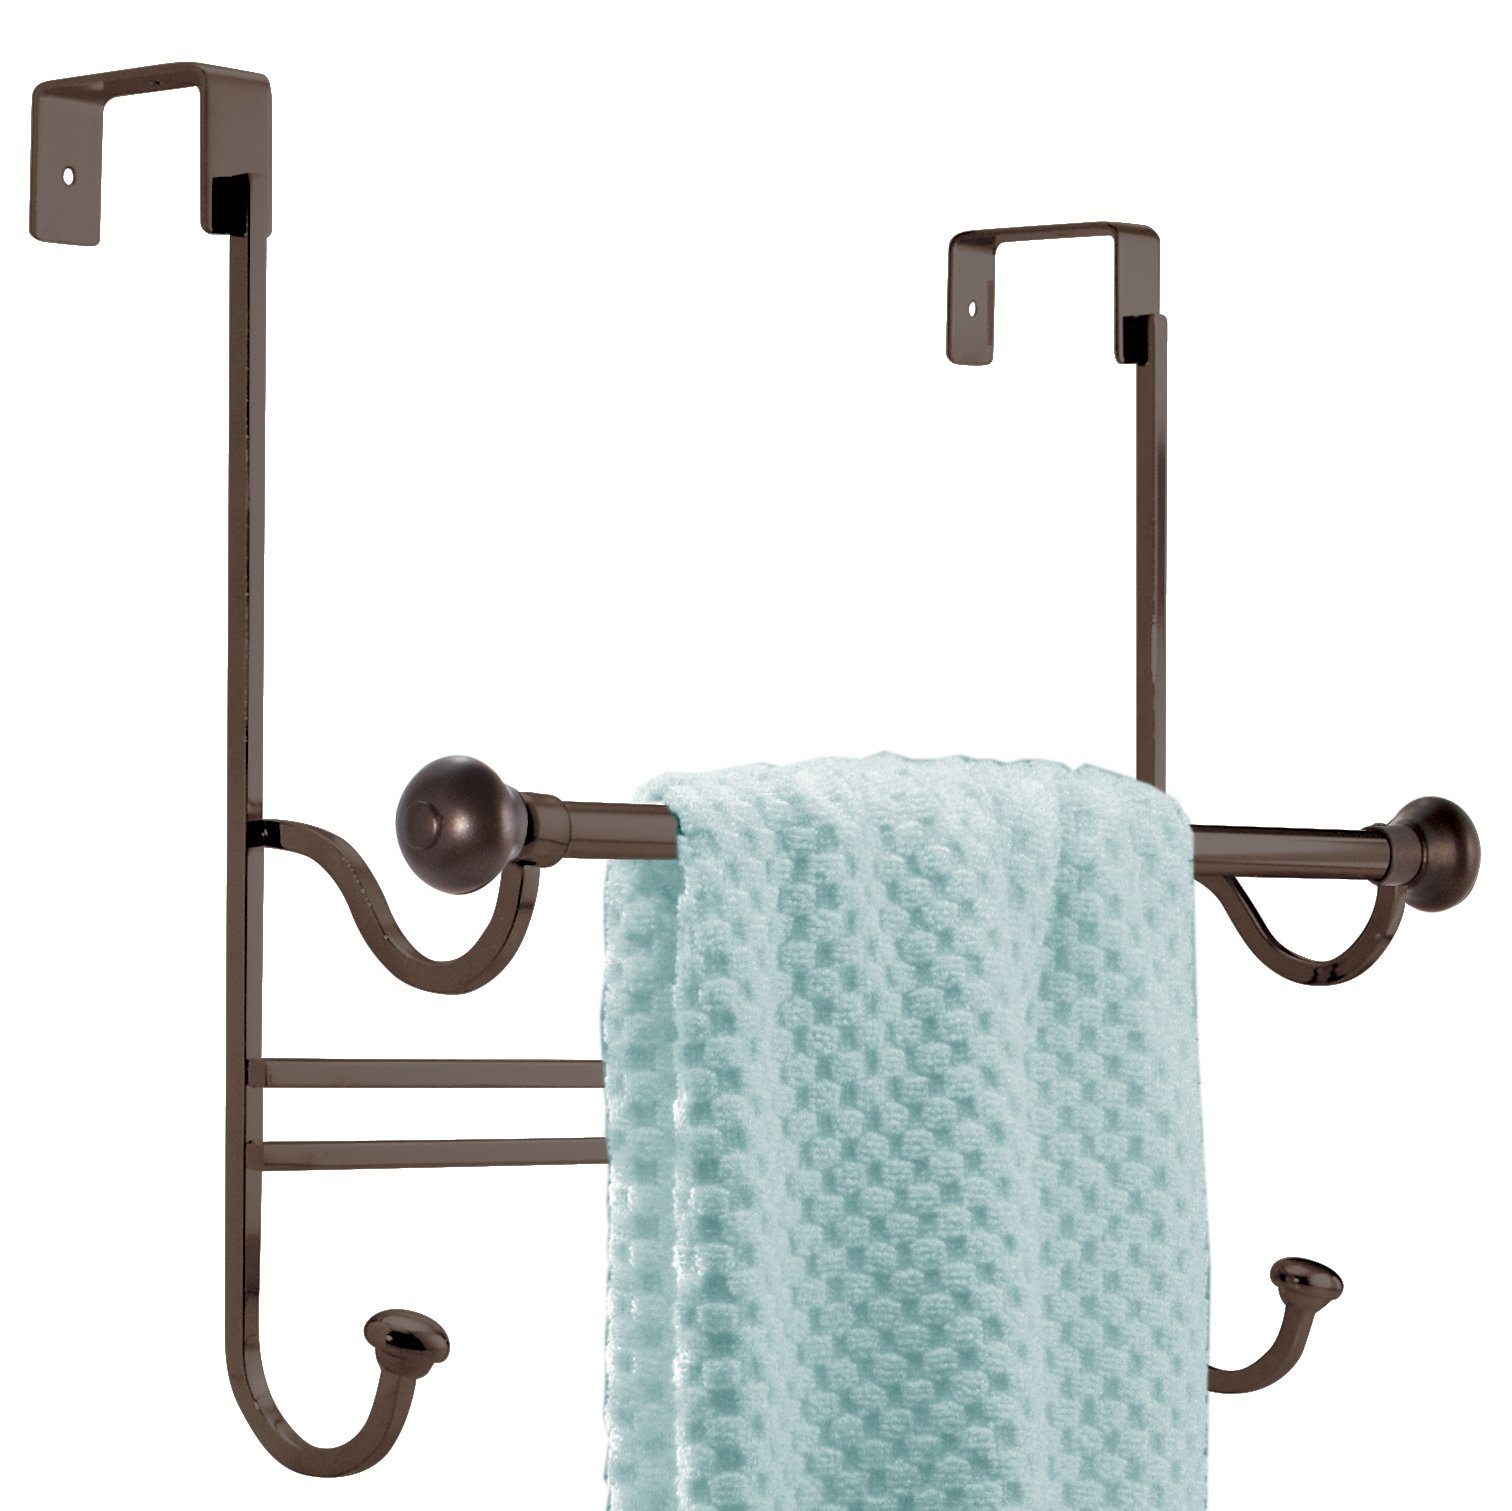 Over The Door Towel Rack Bathroom: MDesign Bathroom Over Shower Door Towel Bar Rack With